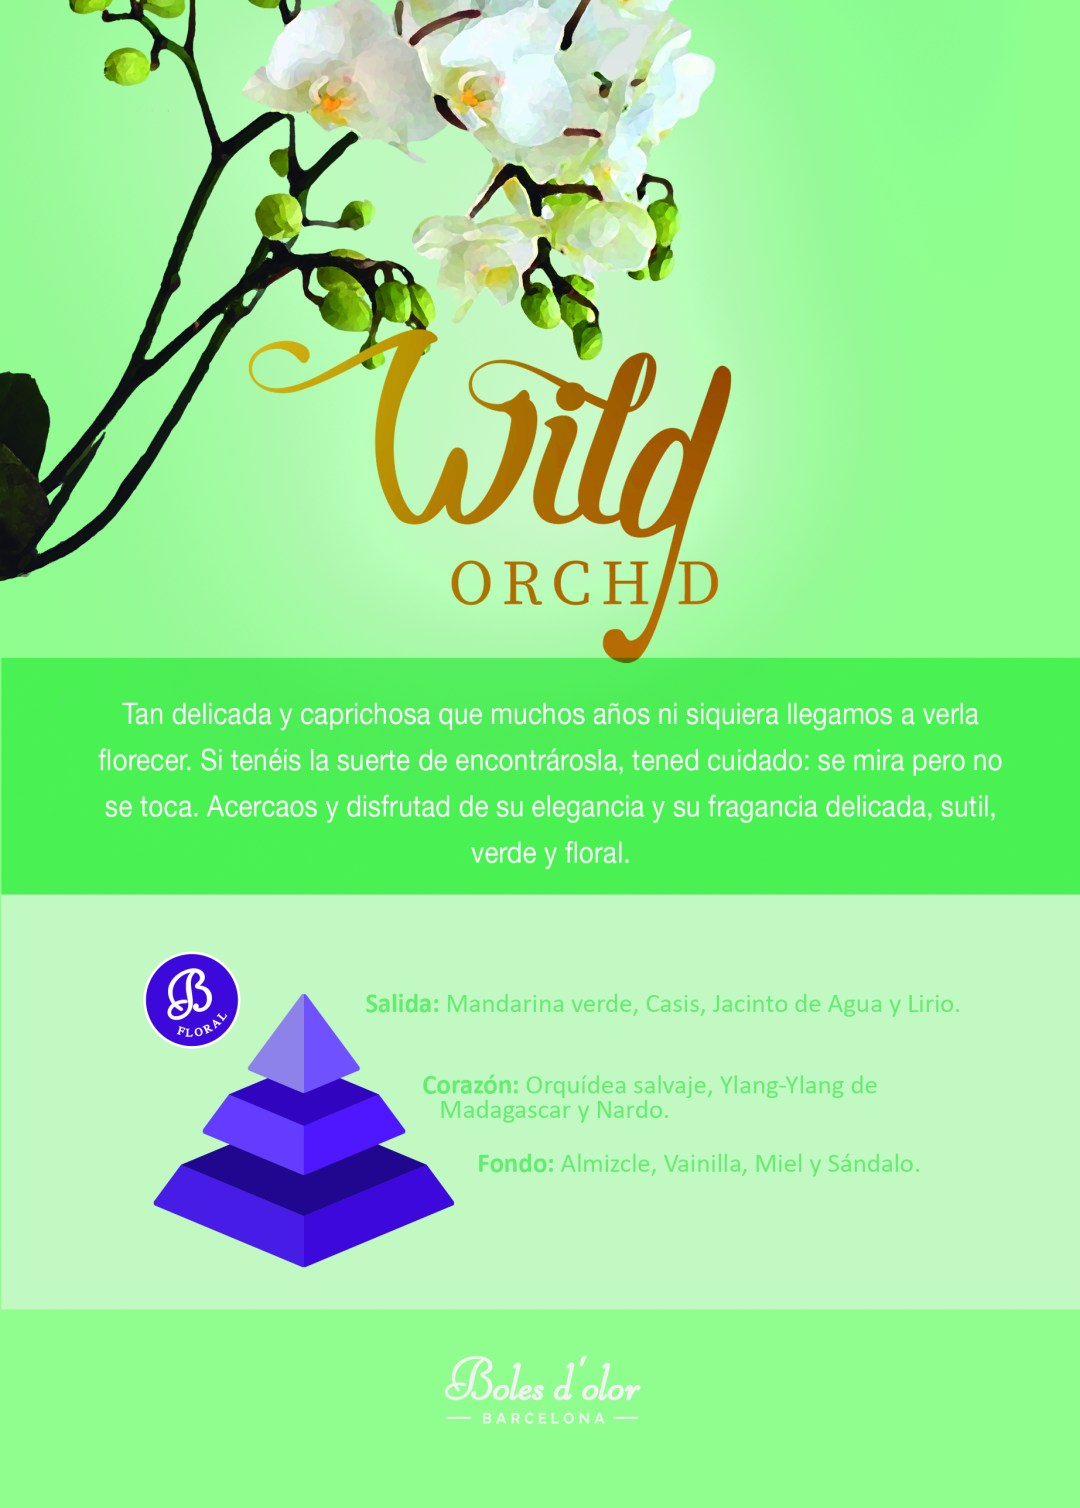 WILD ORCHID Piramide Ambients